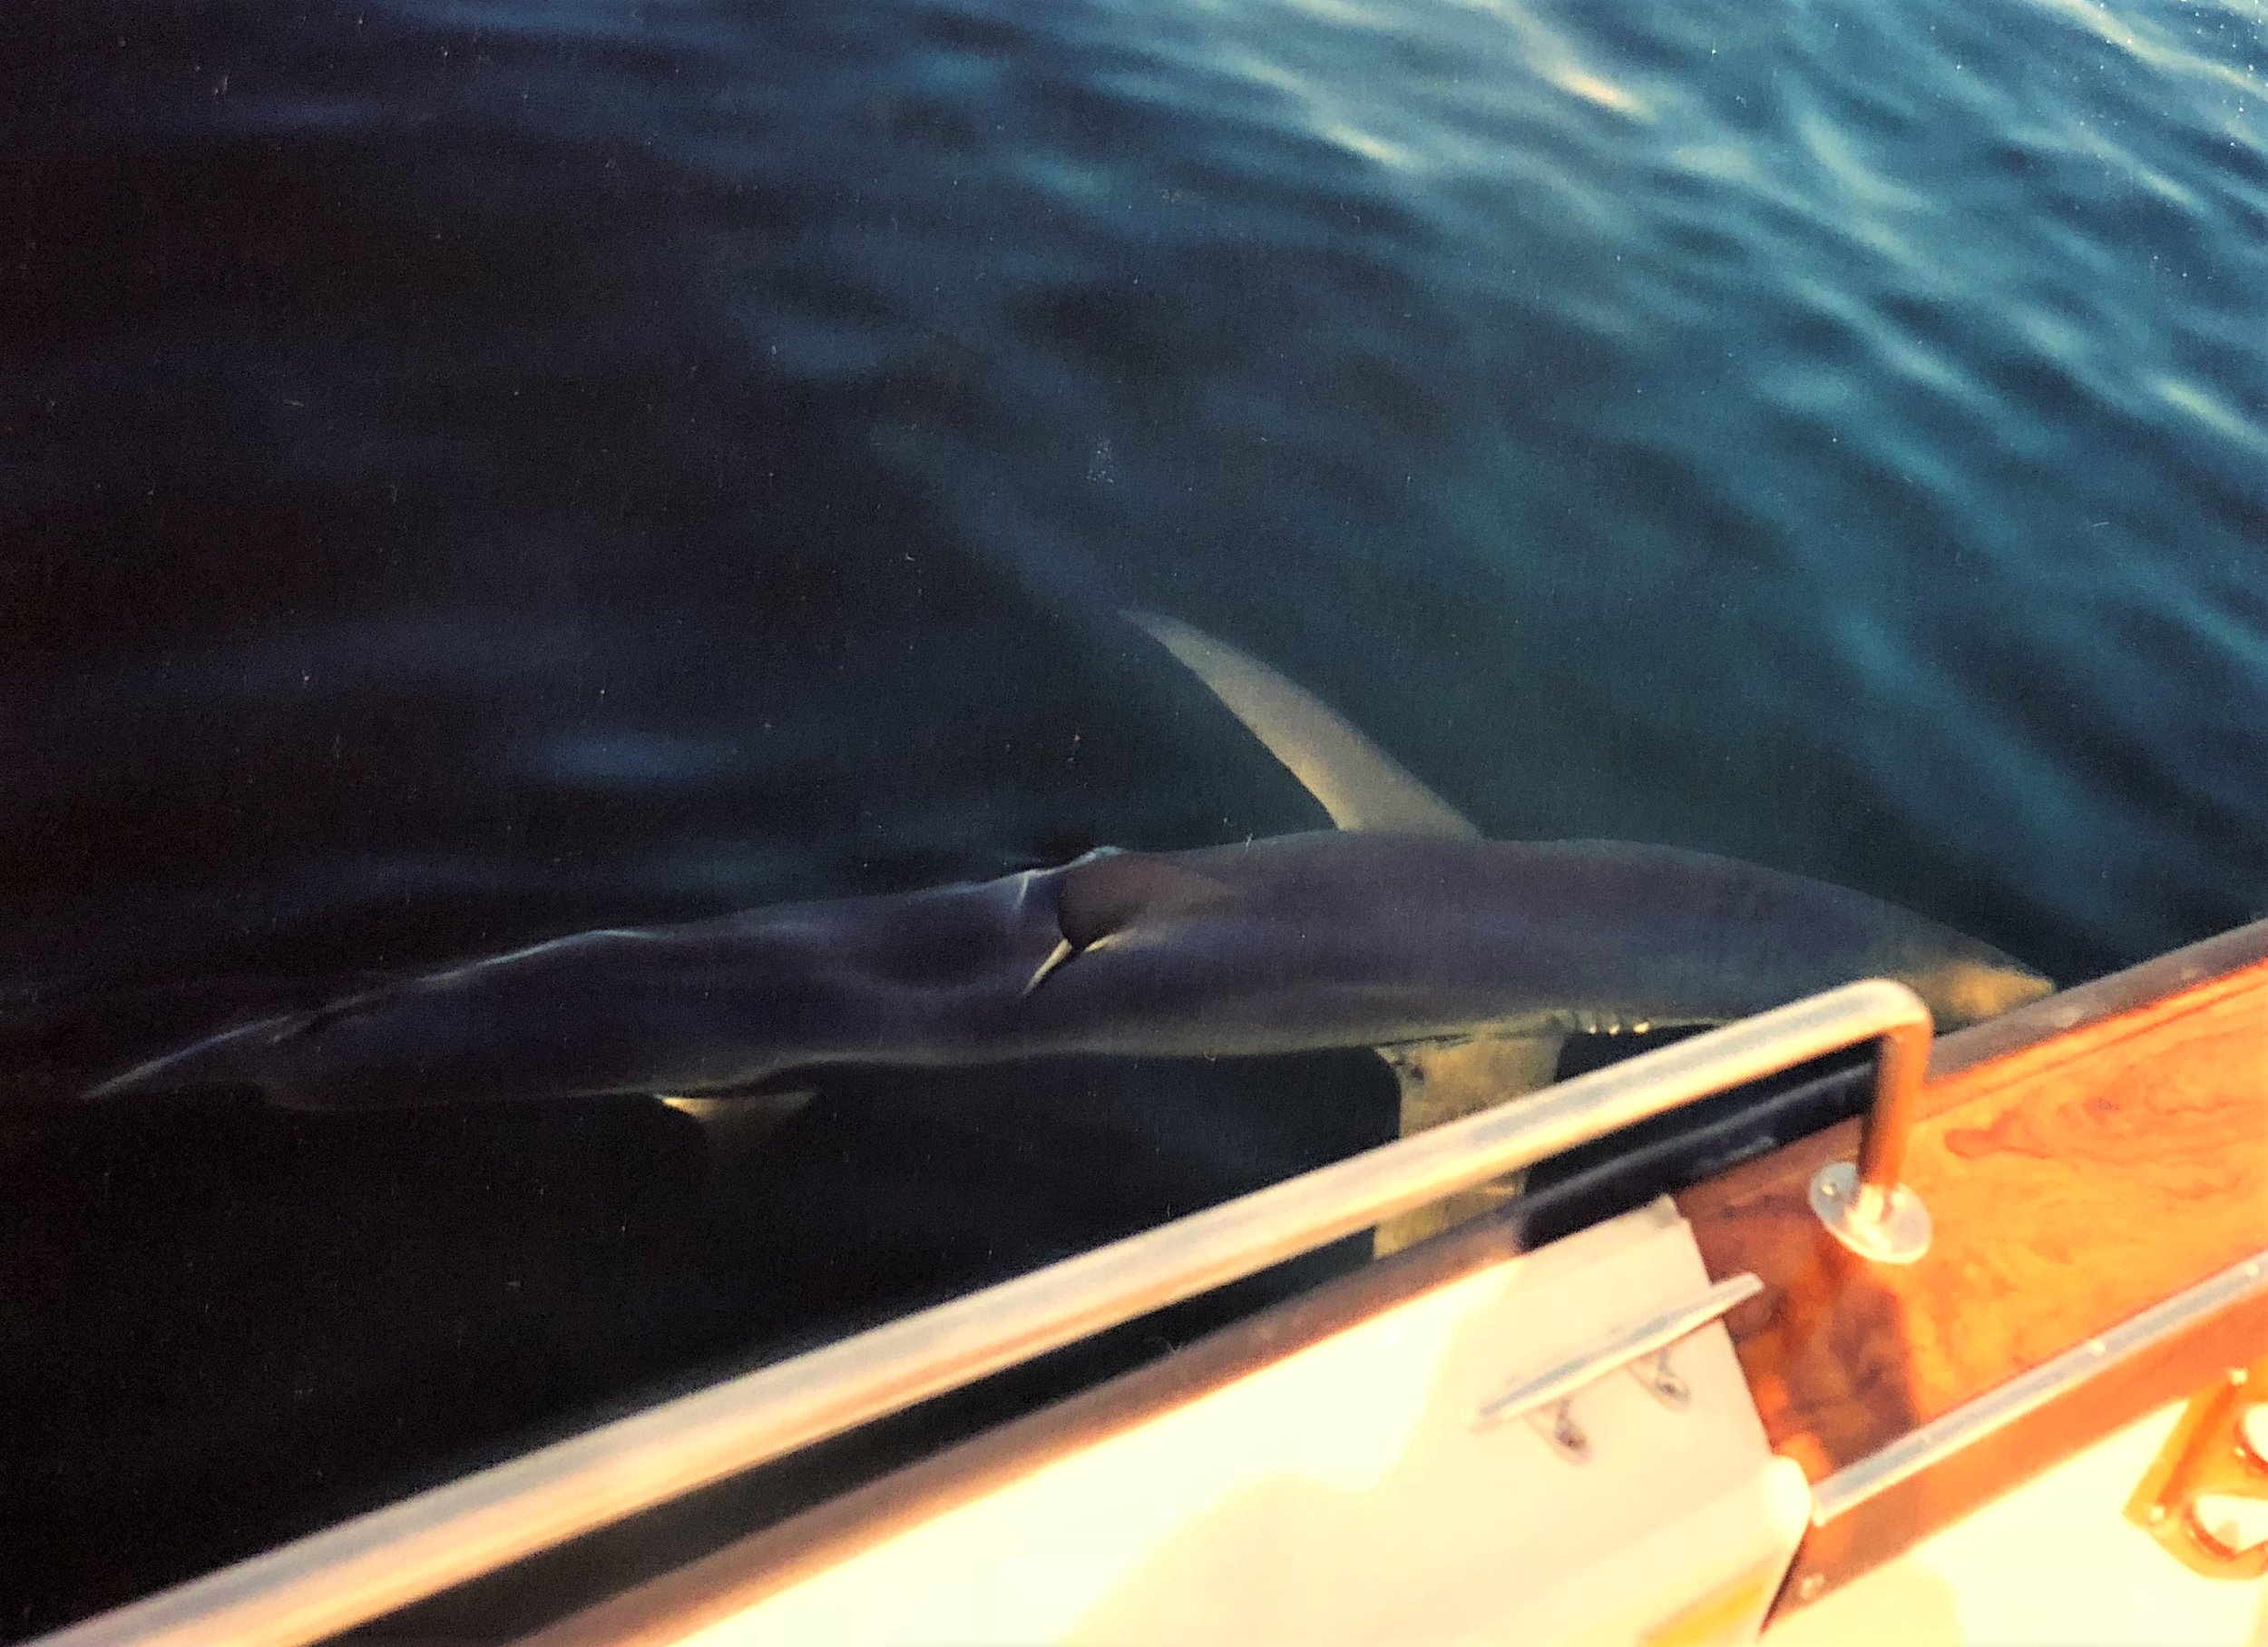 Shark - 8+ Hours - $800Seasons: July - September.Locations: Portsmouth, NH.Duuun-Dun, Duuun-Dun. Few things get a fisherman's heart pounding like seeing the dorsal fin of a large shark slowly working its way through the waves. We leave from Portsmouth Harbor and head offshore for a day chasing some of the largest fish in New England. It's not uncommon to see Whales, Dolphins, Ocean Sunfish and Bluefin Tuna on these trips. We use the latest in heavy duty offshore spinning gear, allowing for an enjoyable and comfortable experience when fighting these giants. To make the most of our time spent offshore, jigging for Cod, Haddock, Pollock and Halibut is a fun way to bring dinner home while drawing in Blue, Mako, Porbeagle and Thresher Sharks.